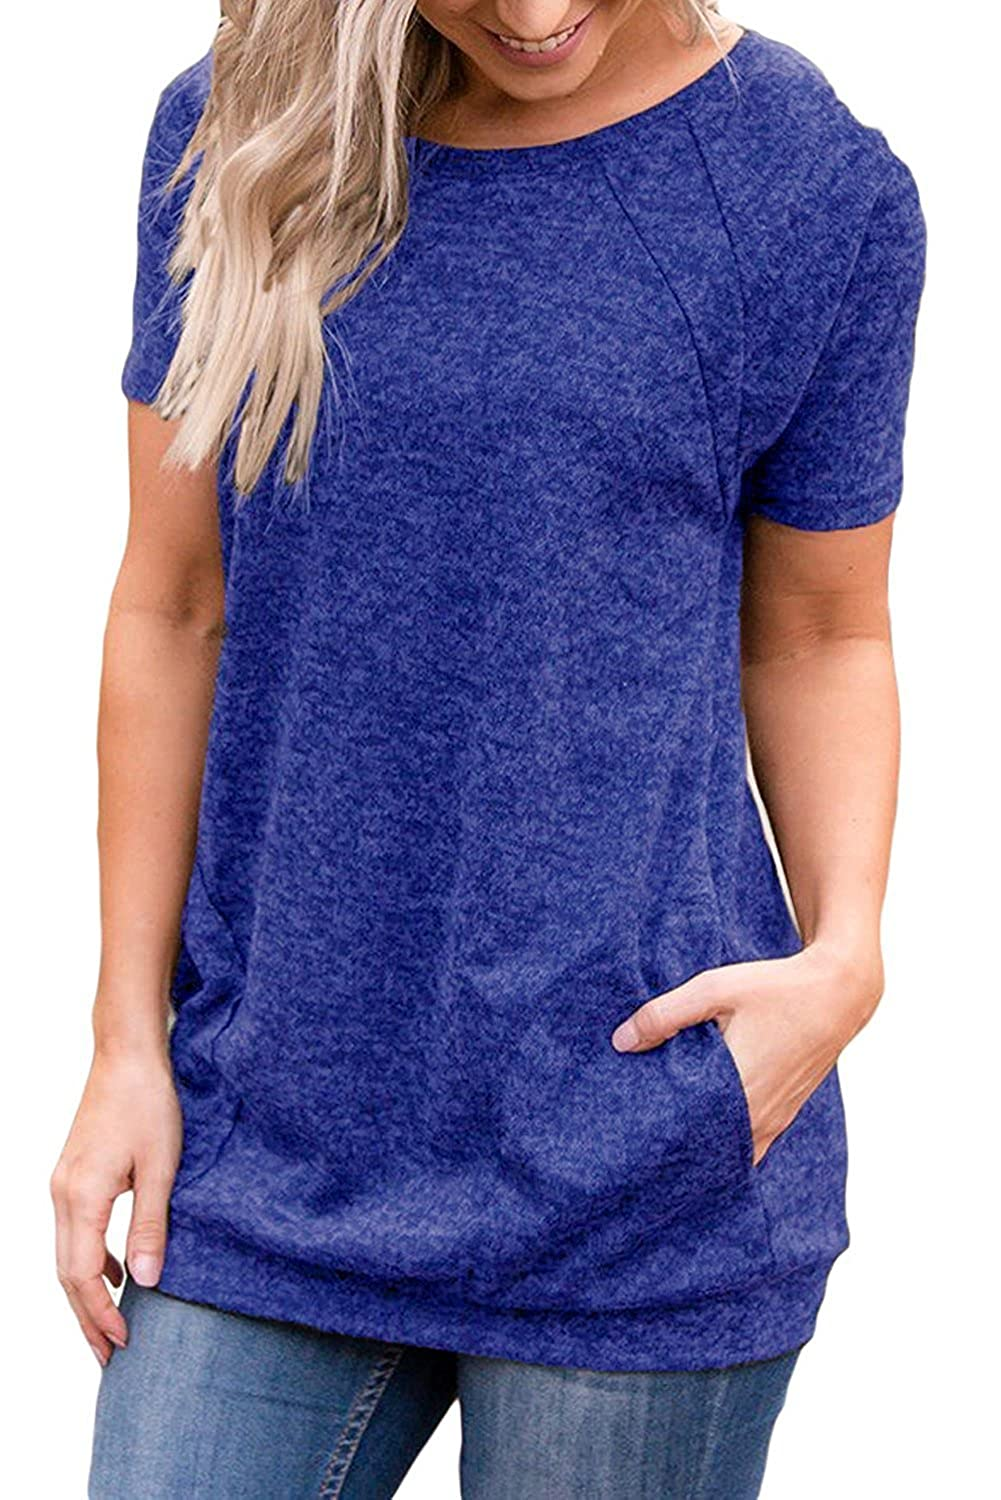 18dfc63c545 Top 10 wholesale Shirts With Pockets Womens - Chinabrands.com